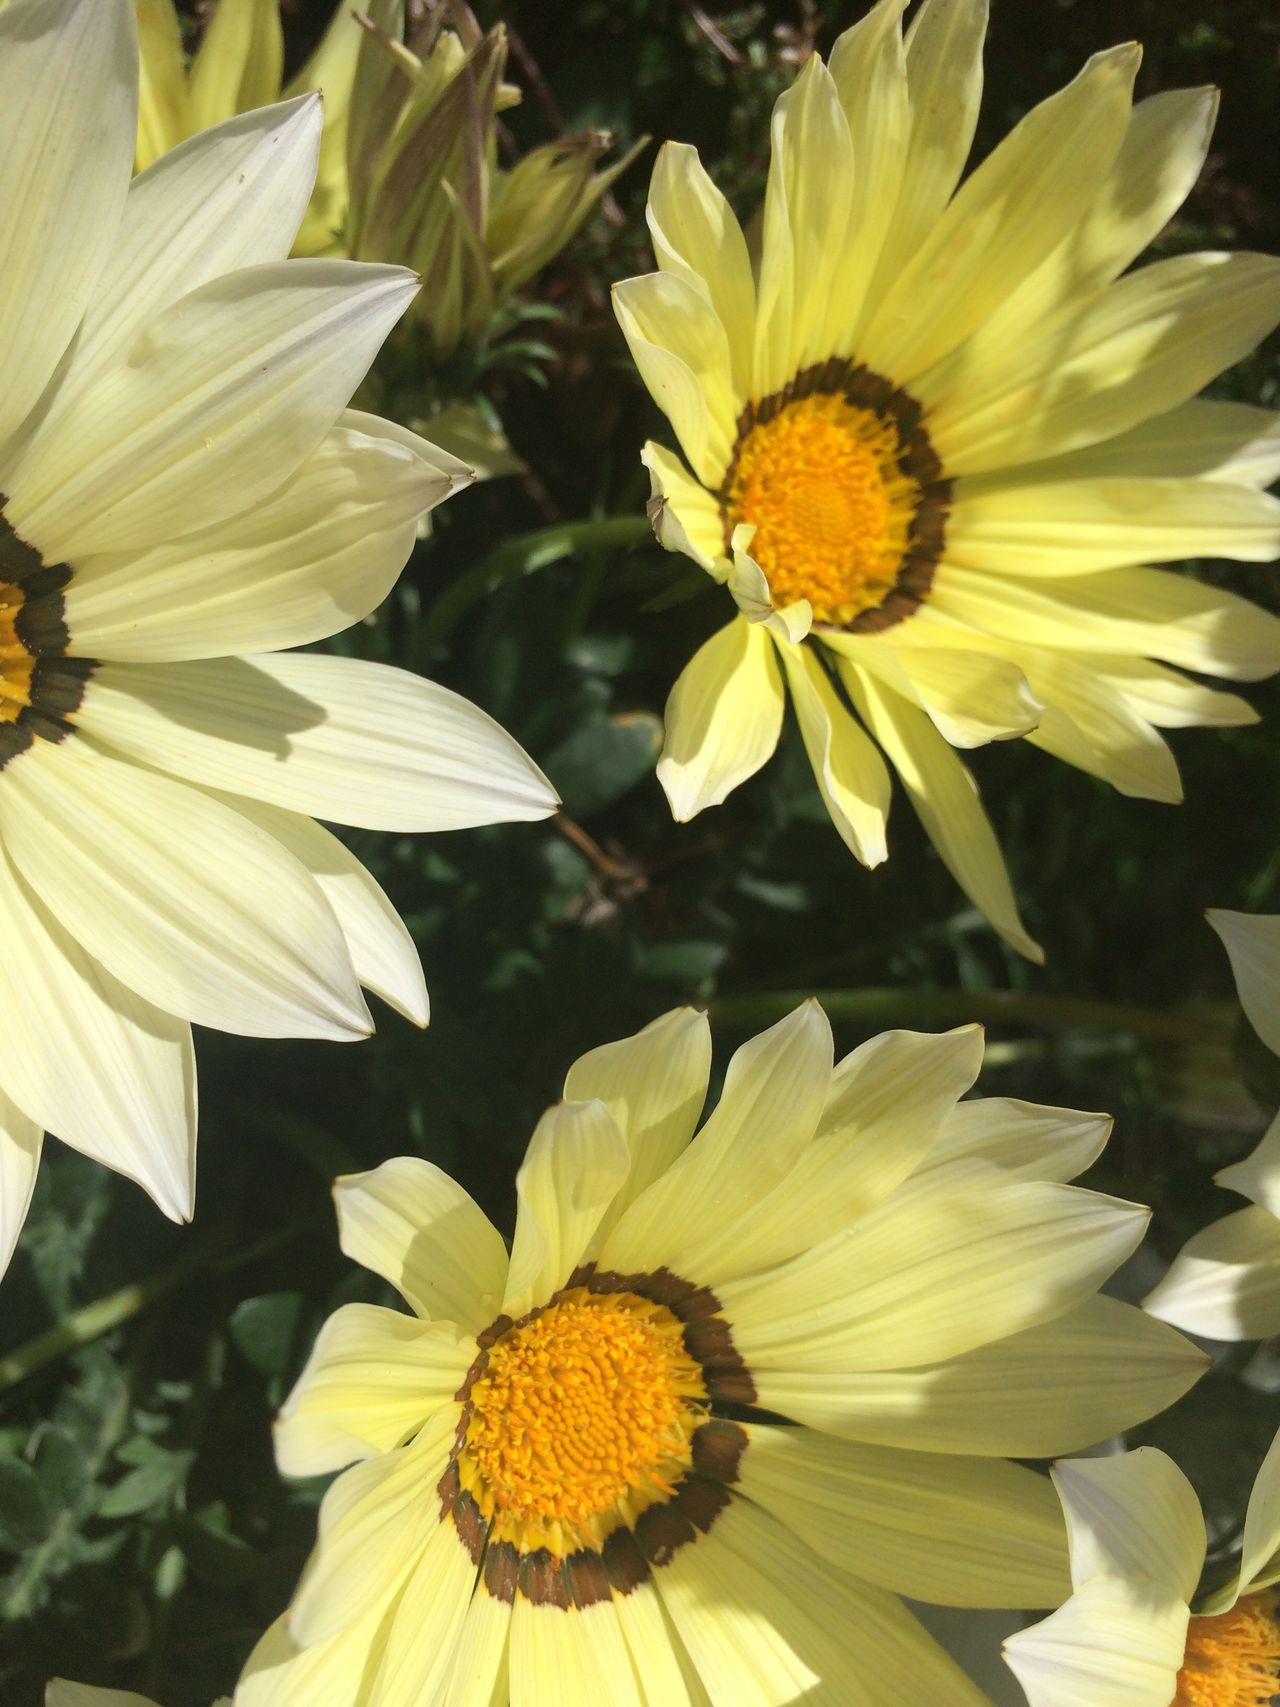 Flower Flower Petal Yellow Fragility Freshness Flower Head Beauty In Nature Pollen Growth Nature Plant Close-up Blooming Day Stamen No People Outdoors